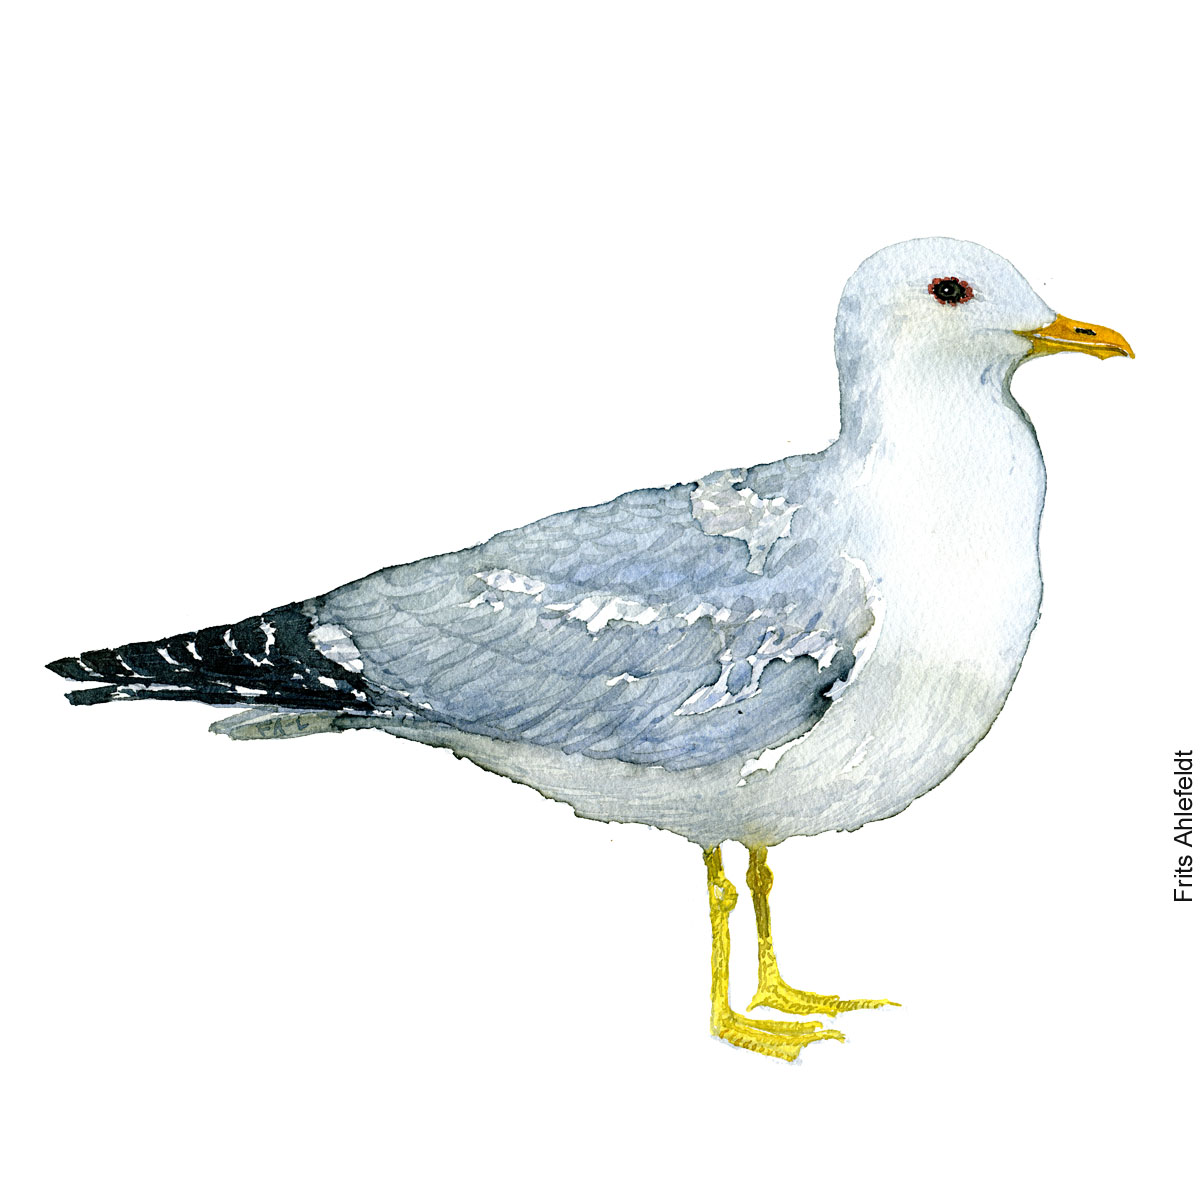 Common gull. Bird watercolor illustration handmade by Frits Ahlefeldt